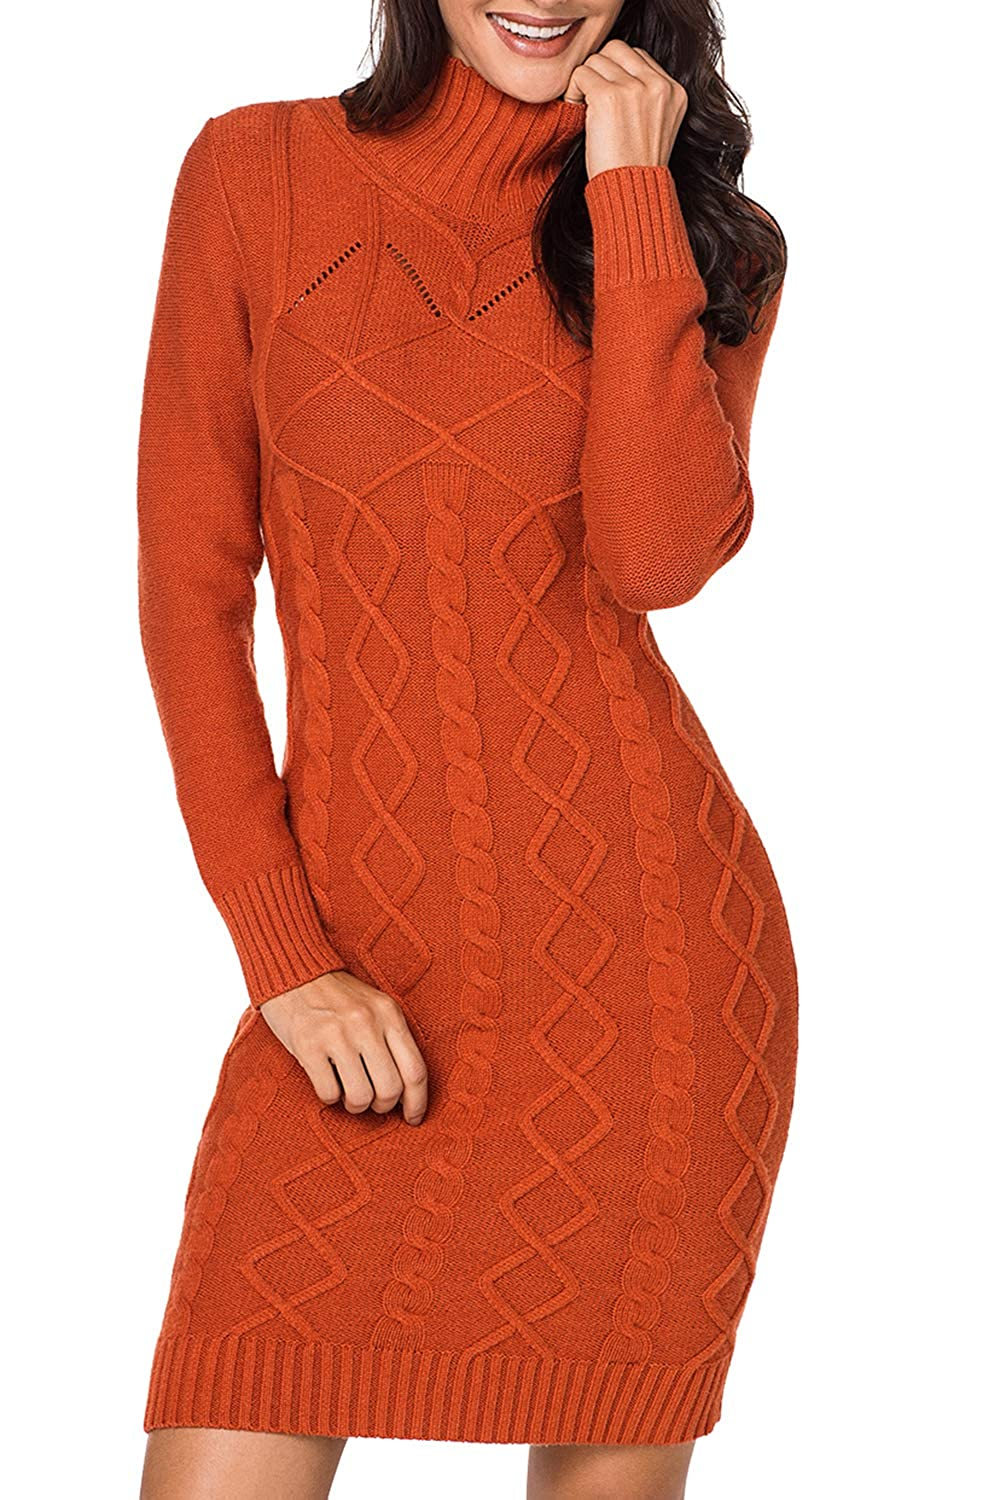 Meenew Women s High Neck Cable Knit Long Sleeve Bodycon Mini Sweater Dress  at Amazon Women s Clothing store  61e2a2fa0